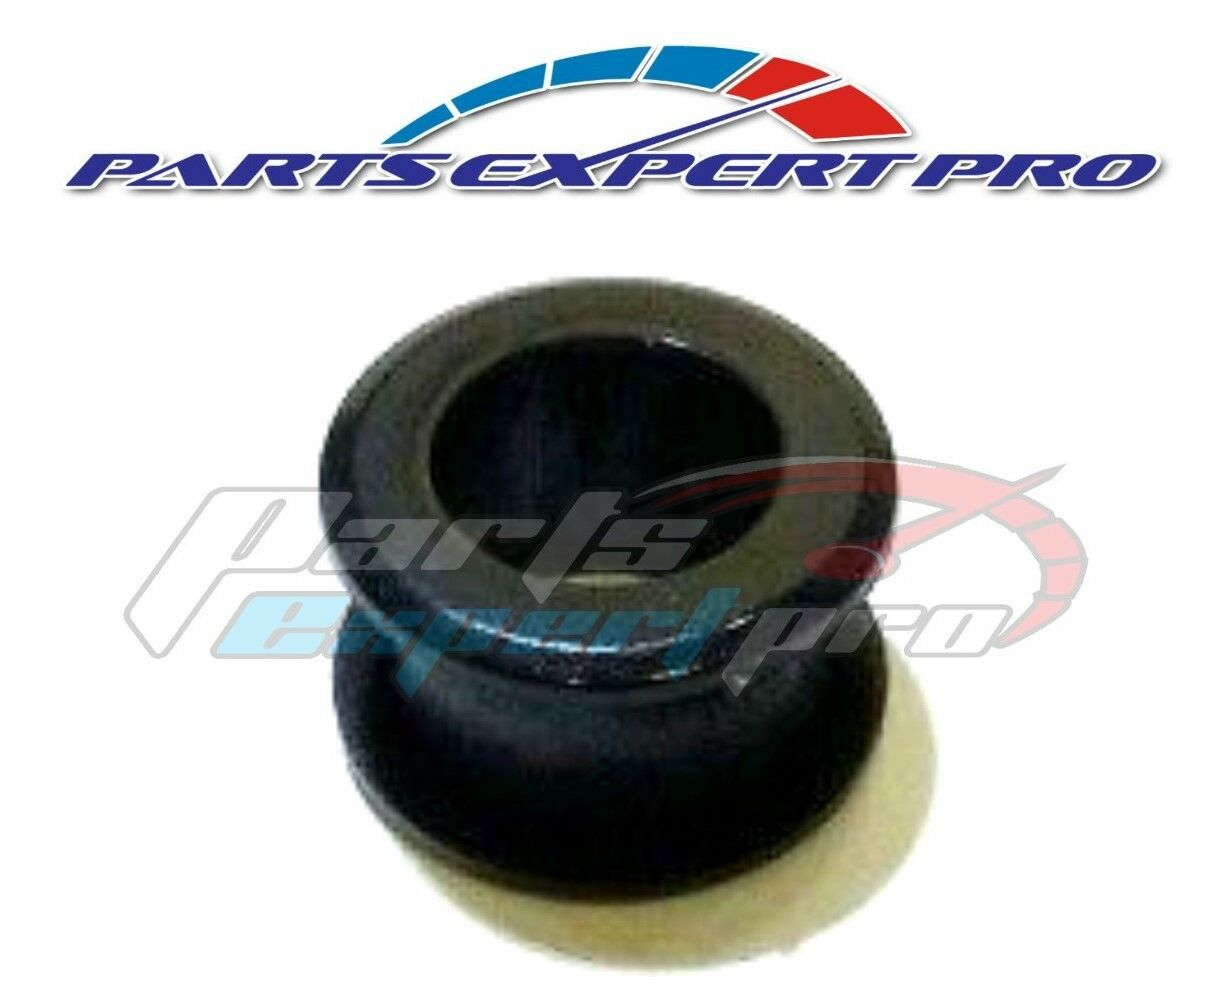 2005 Toyota Corolla Shifter Cable For Sale Through